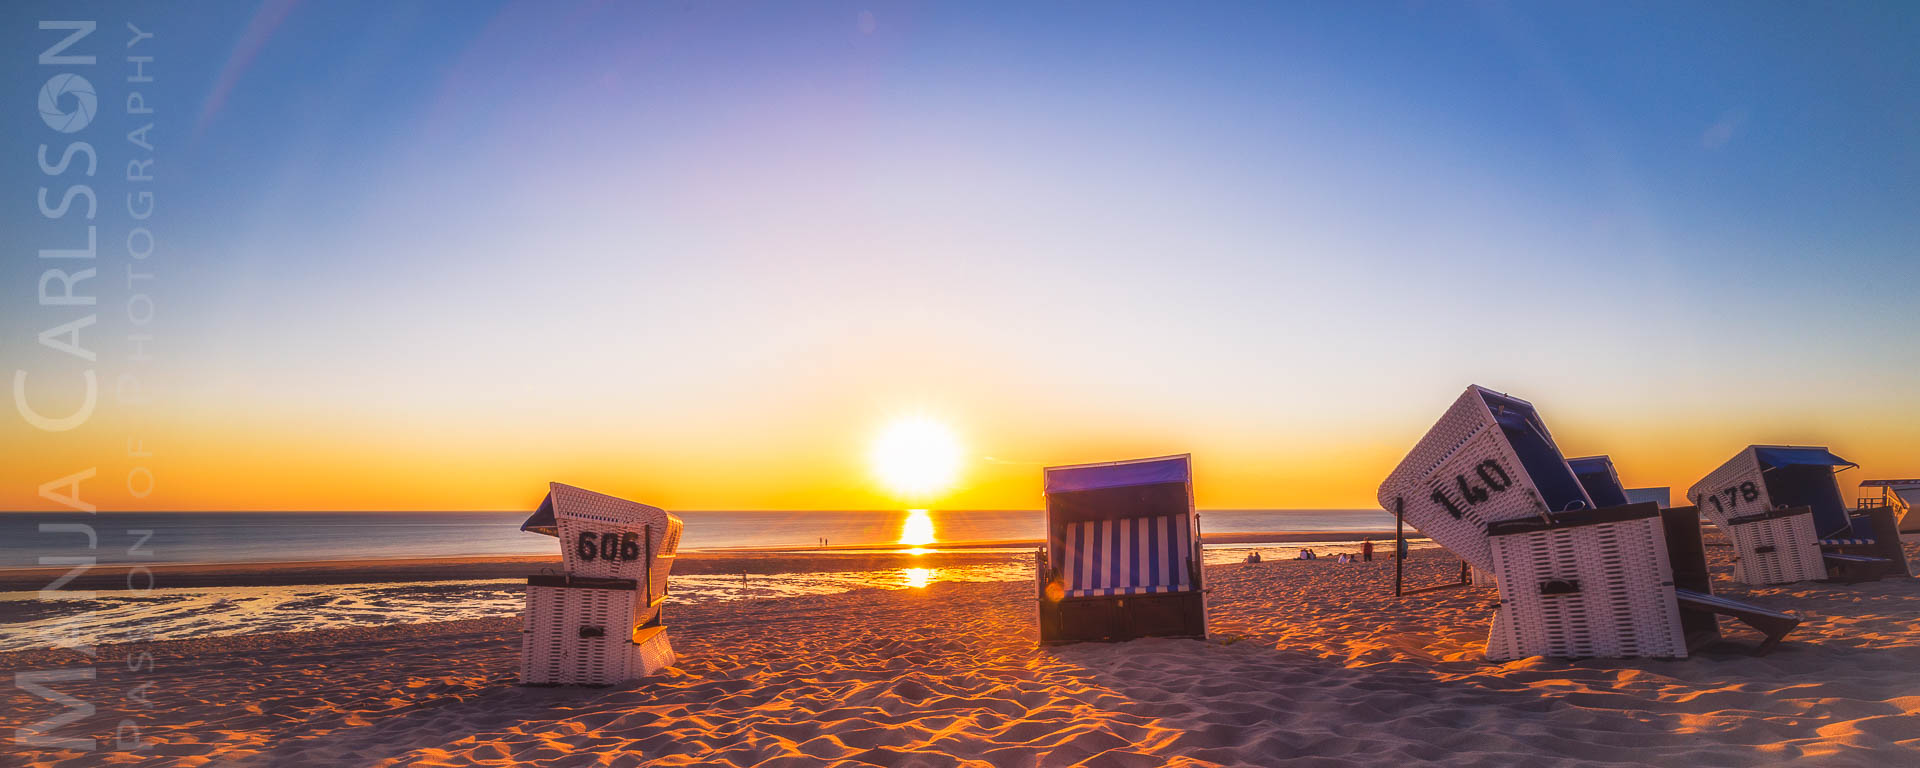 sylt zum sonnenuntergang am sansibar strand manja carlsson passion of photography. Black Bedroom Furniture Sets. Home Design Ideas